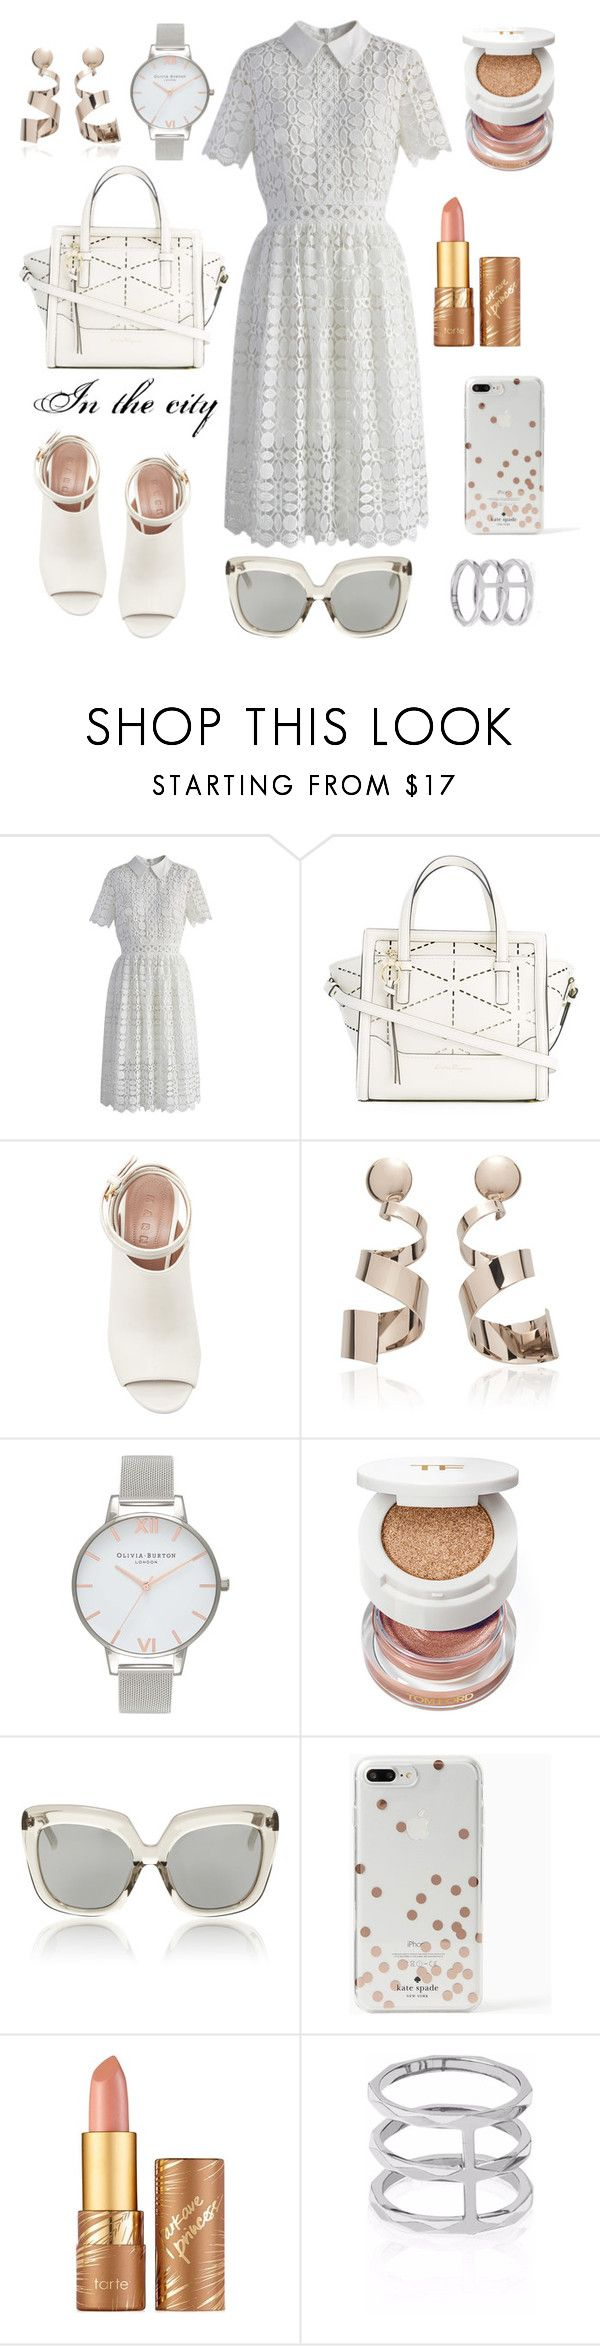 """""""Summer in the city"""" by ana-amorim ❤ liked on Polyvore featuring Chicwish, Salvatore Ferragamo, Marni, Olivia Burton, Tom Ford, Linda Farrow, Kate Spade, tarte and Edge of Ember"""